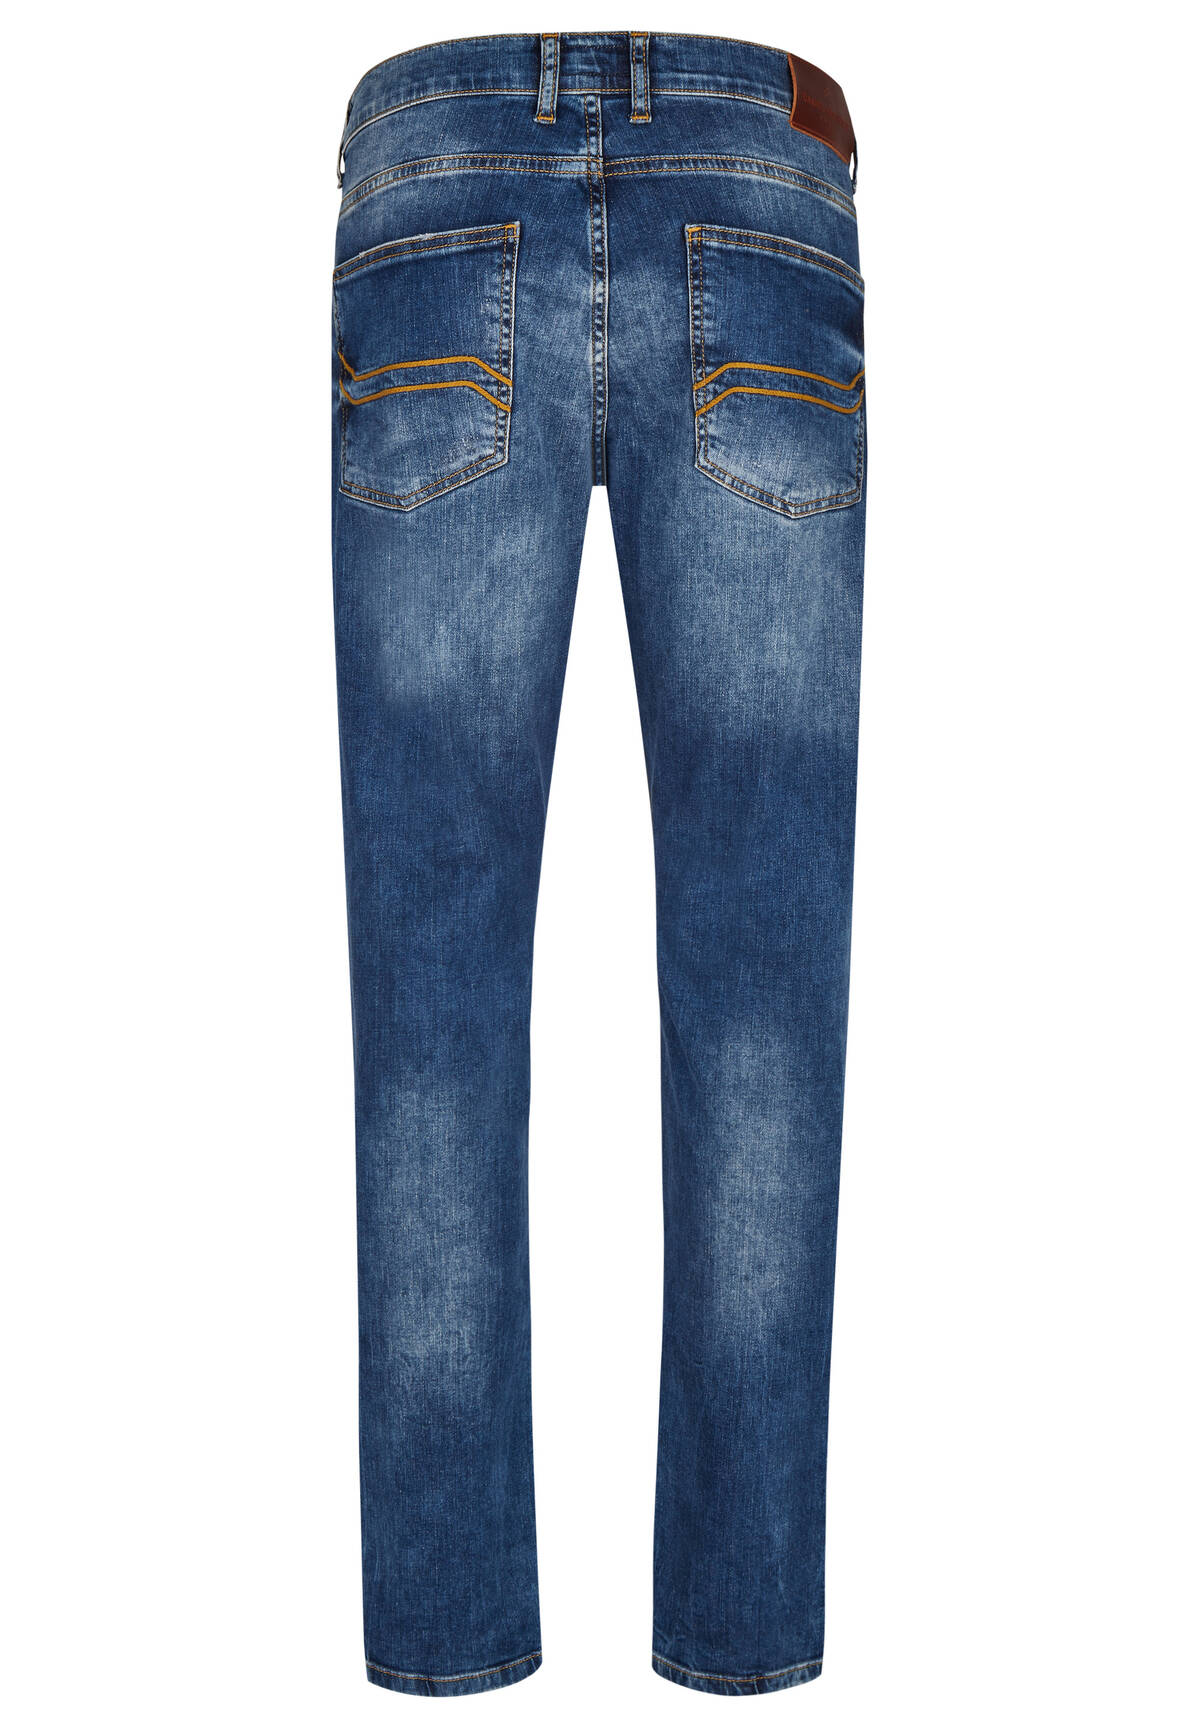 Jean 5 poches en denim /